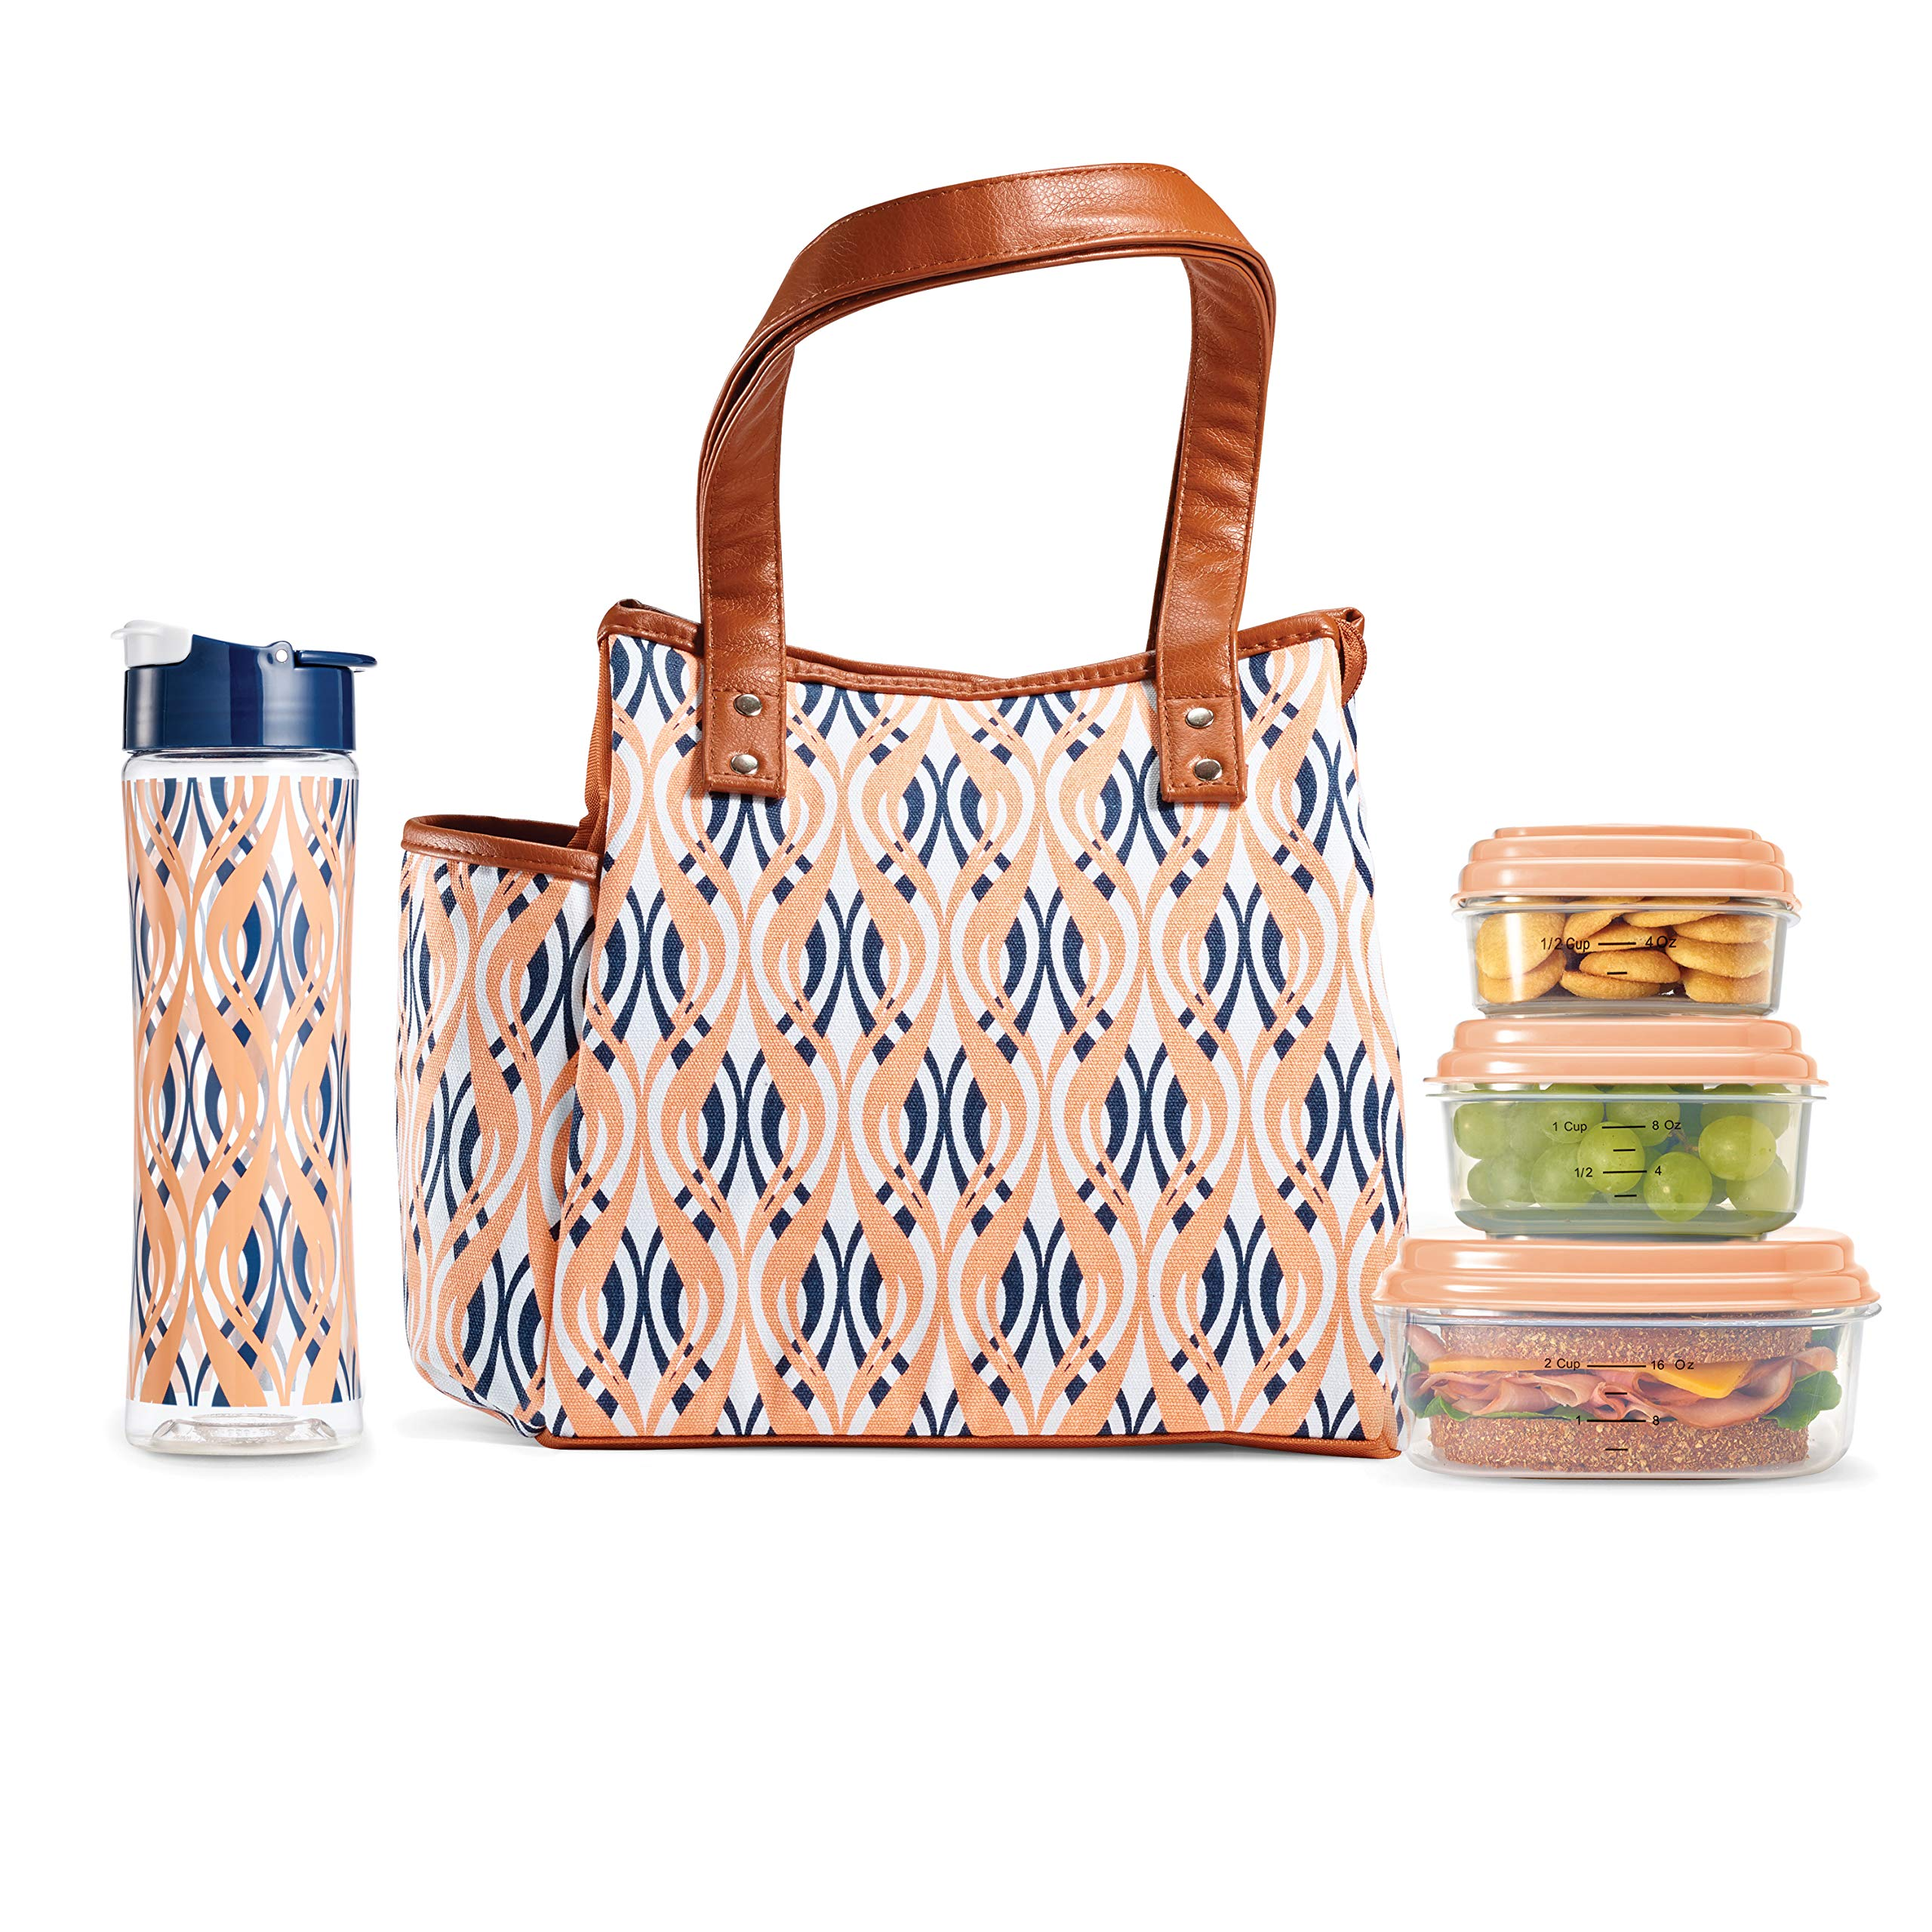 Fit & Fresh Insulated Lunch Bag Kit, includes Matching Bottle and Containers, Westerly Peach Teardrop Waves